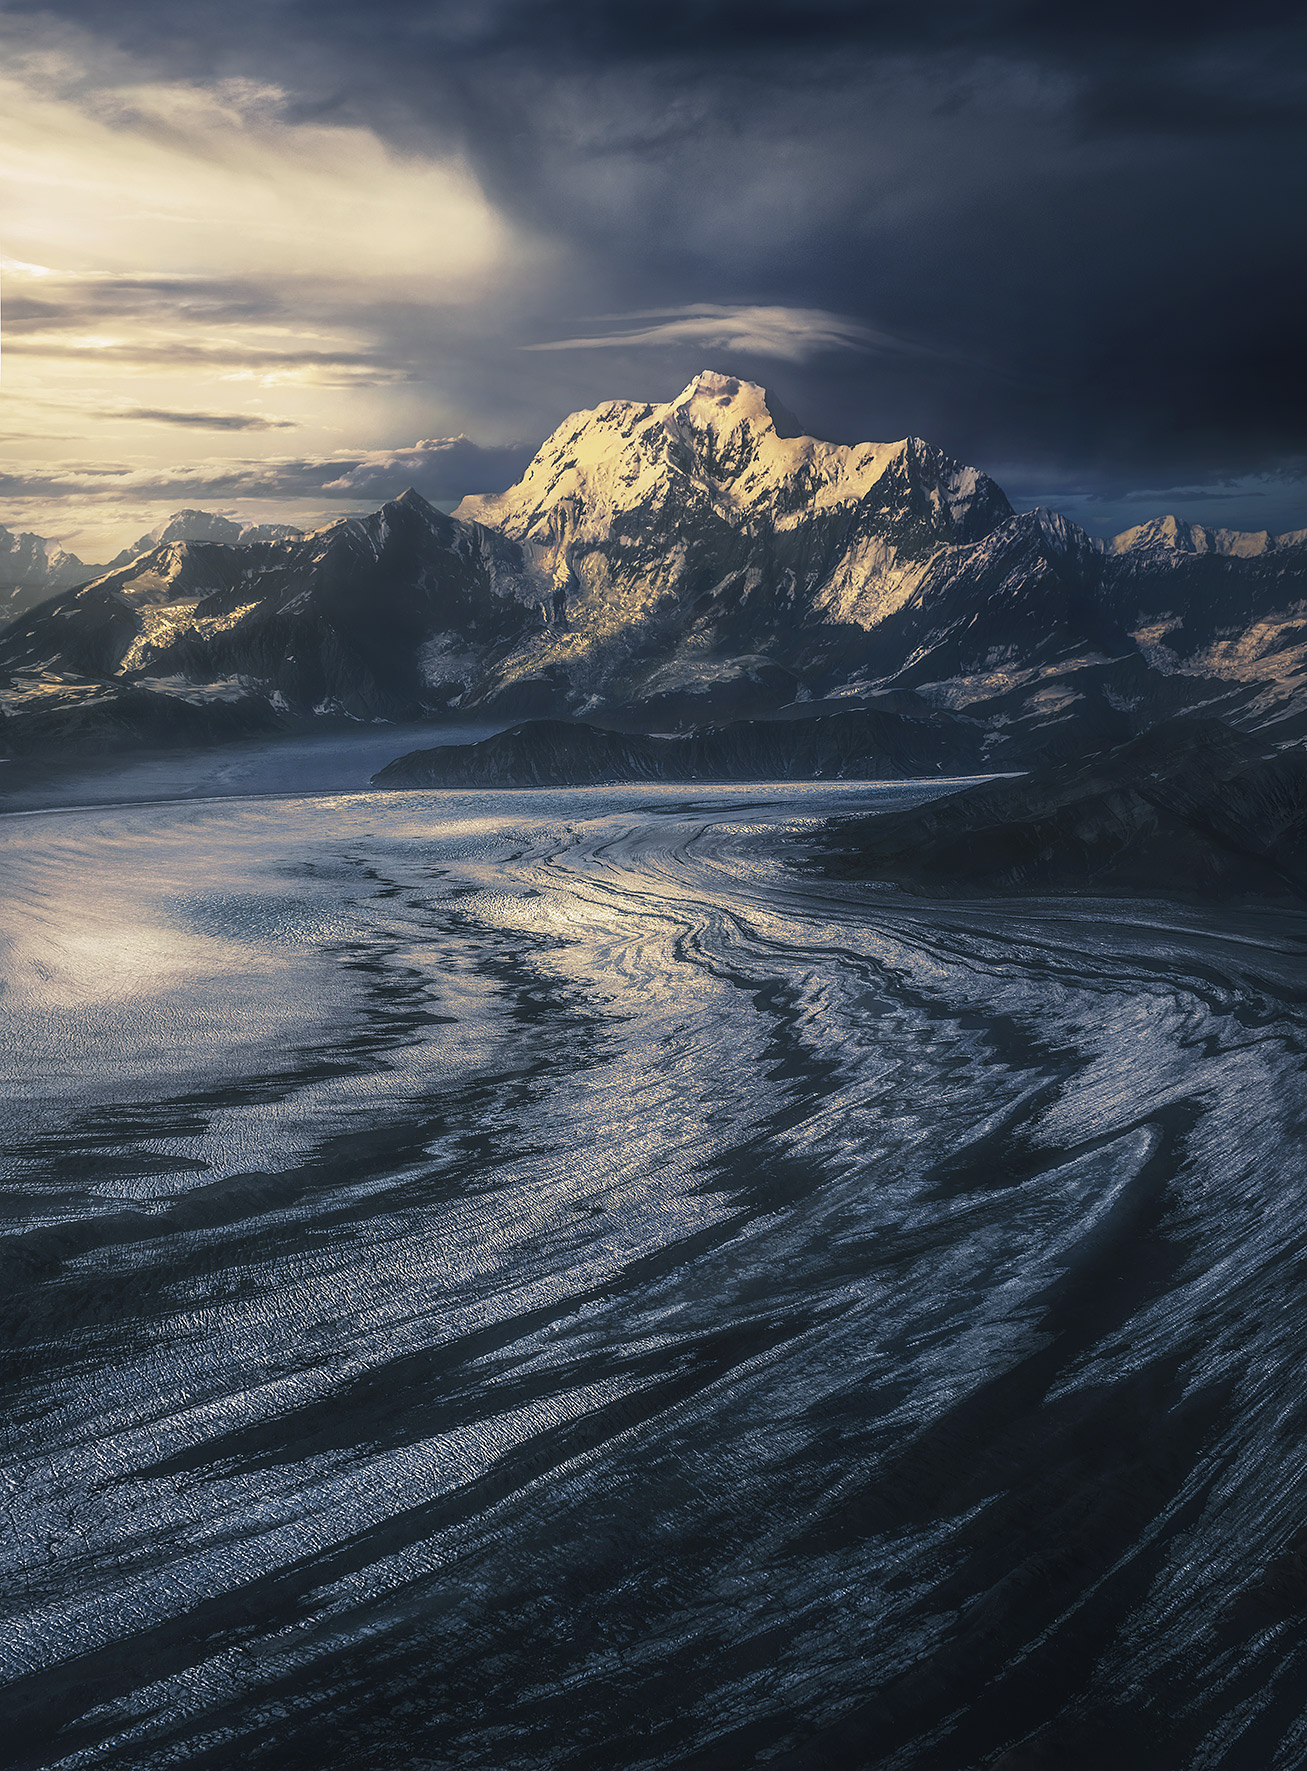 The great Mount St Eliascatches the light, towering more than fifteen thousand feet higher thanglaciers you see below...